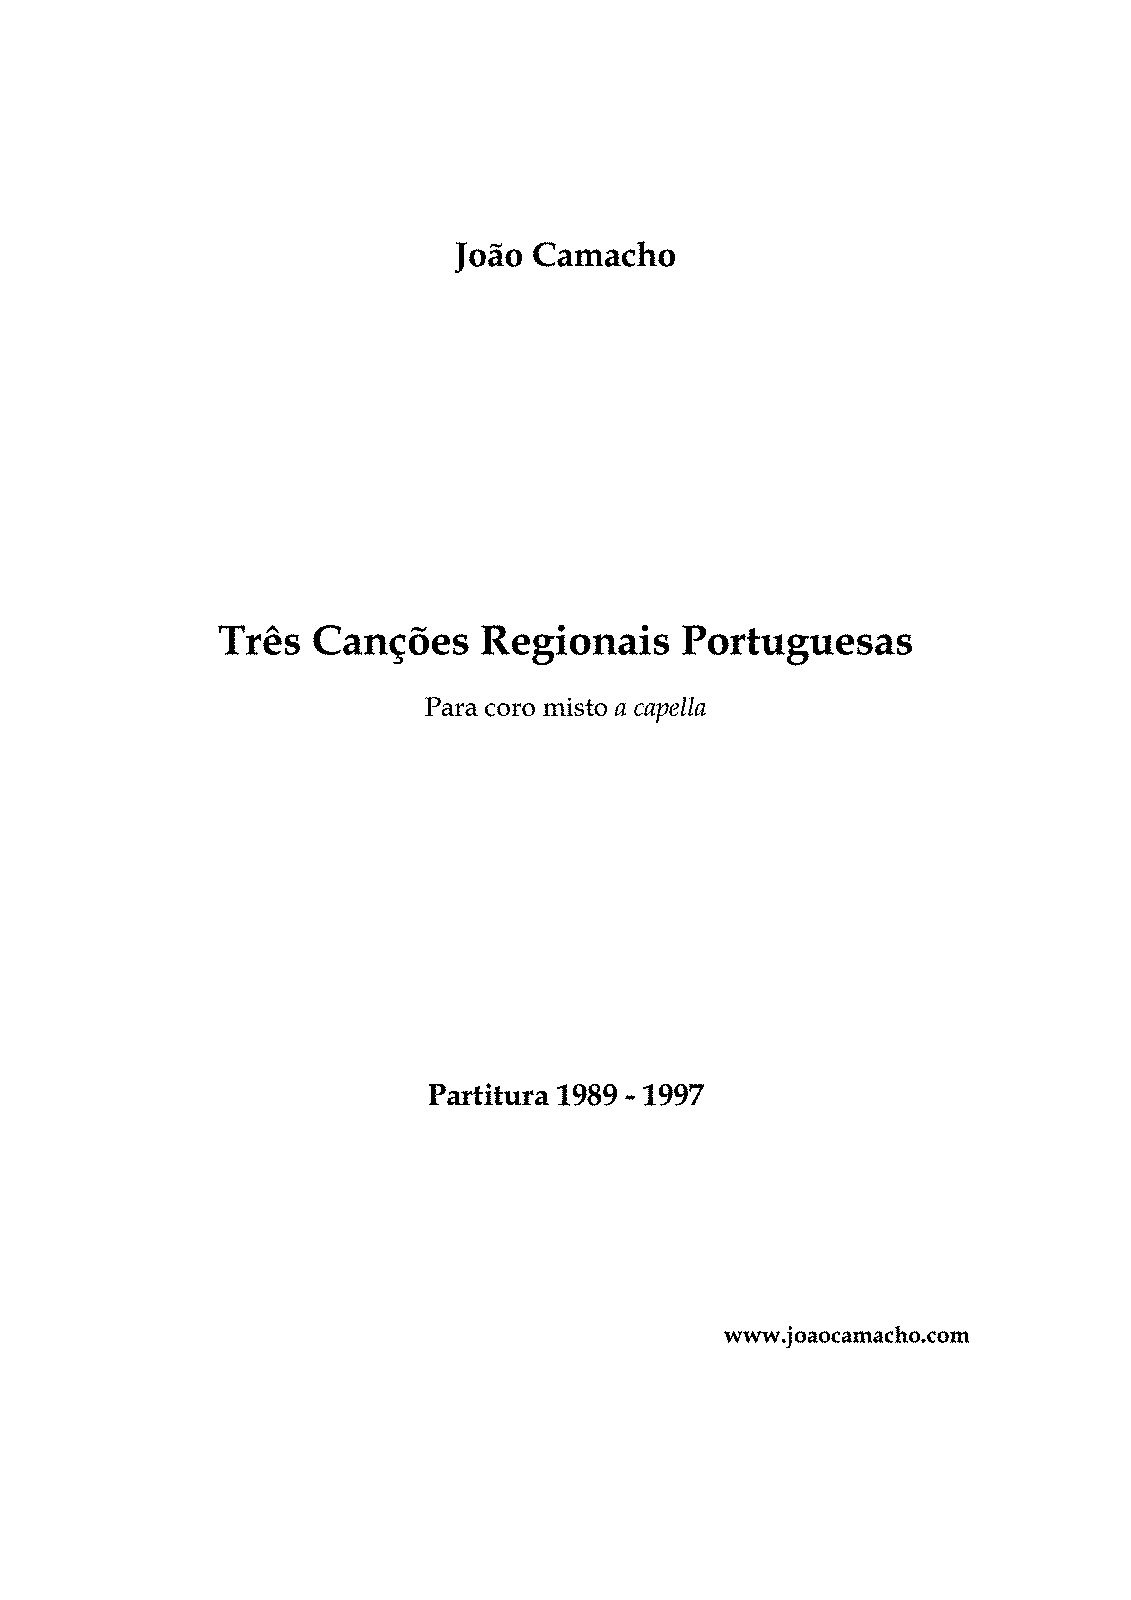 PMLP486243-3 cancoes reg port -Partitura-.pdf